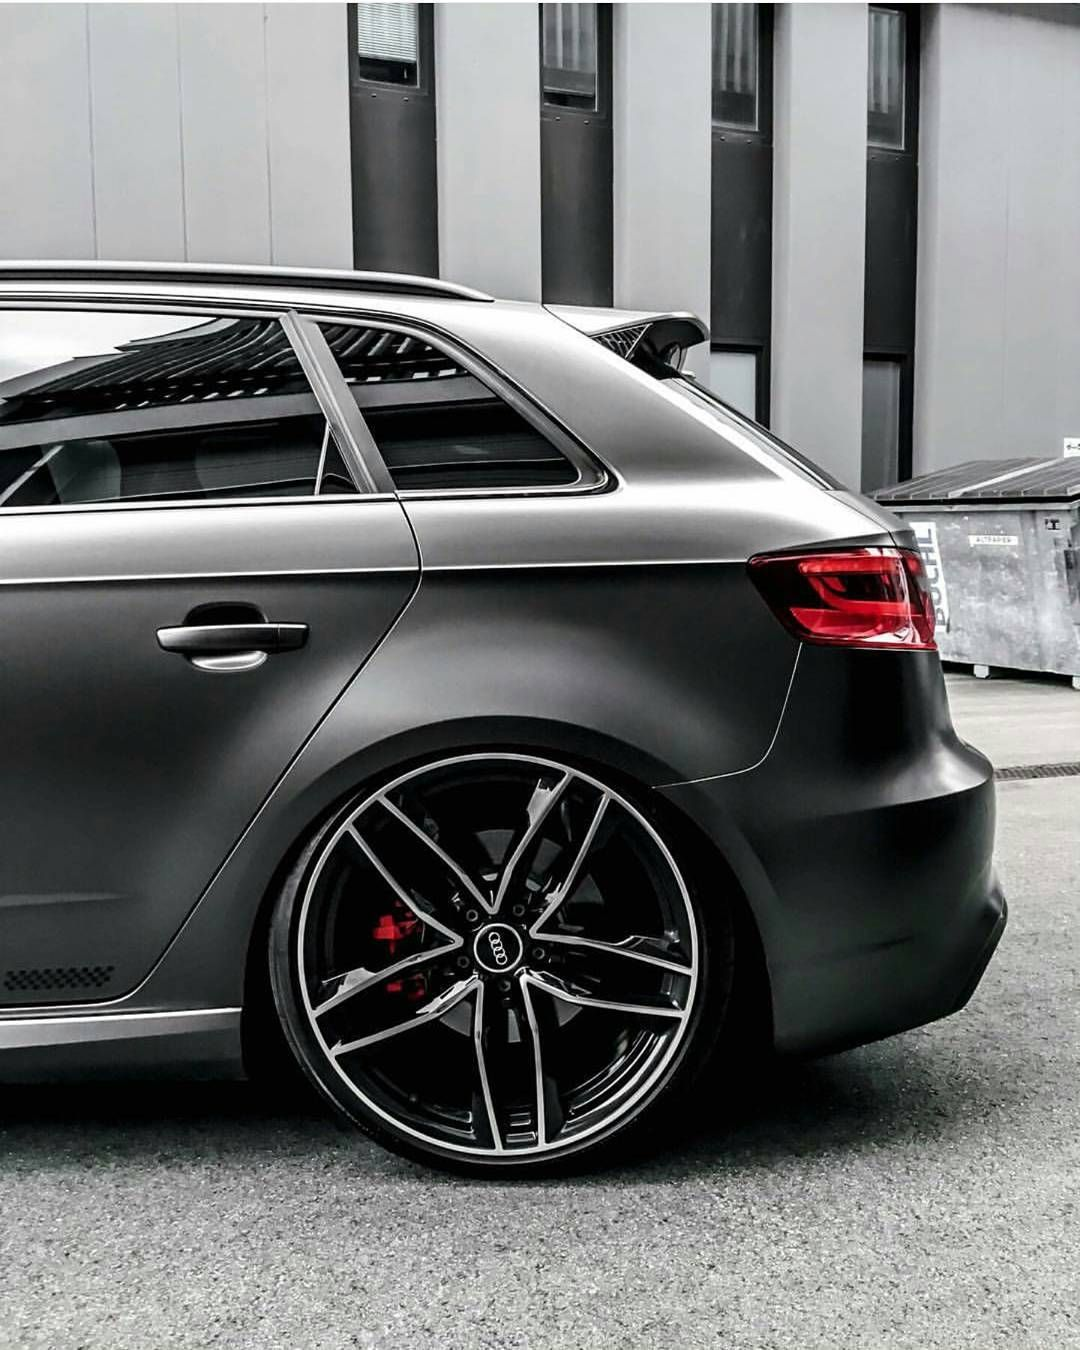 22.9k Likes, 57 Comments - Audi Fan Page (@audi_official) on Instagram